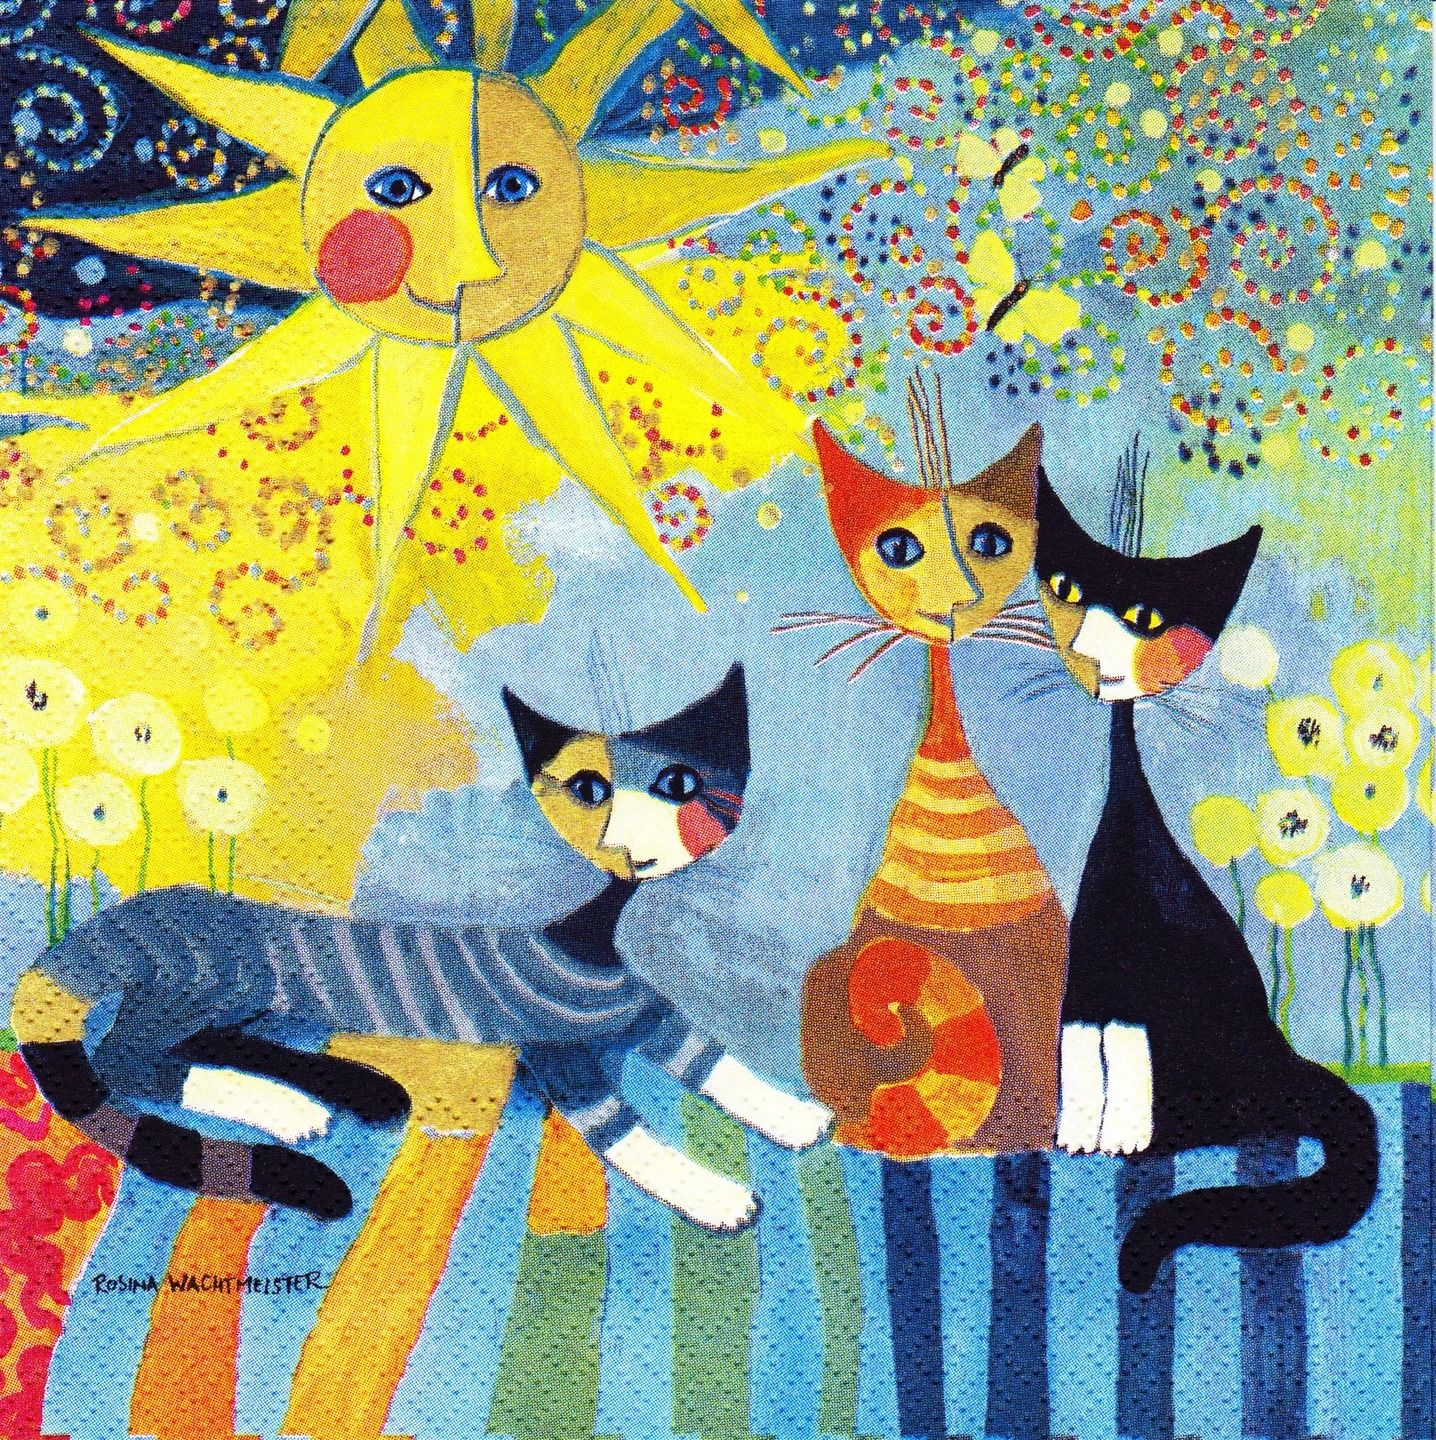 rosina wachtmeister pottery cats pinterest. Black Bedroom Furniture Sets. Home Design Ideas